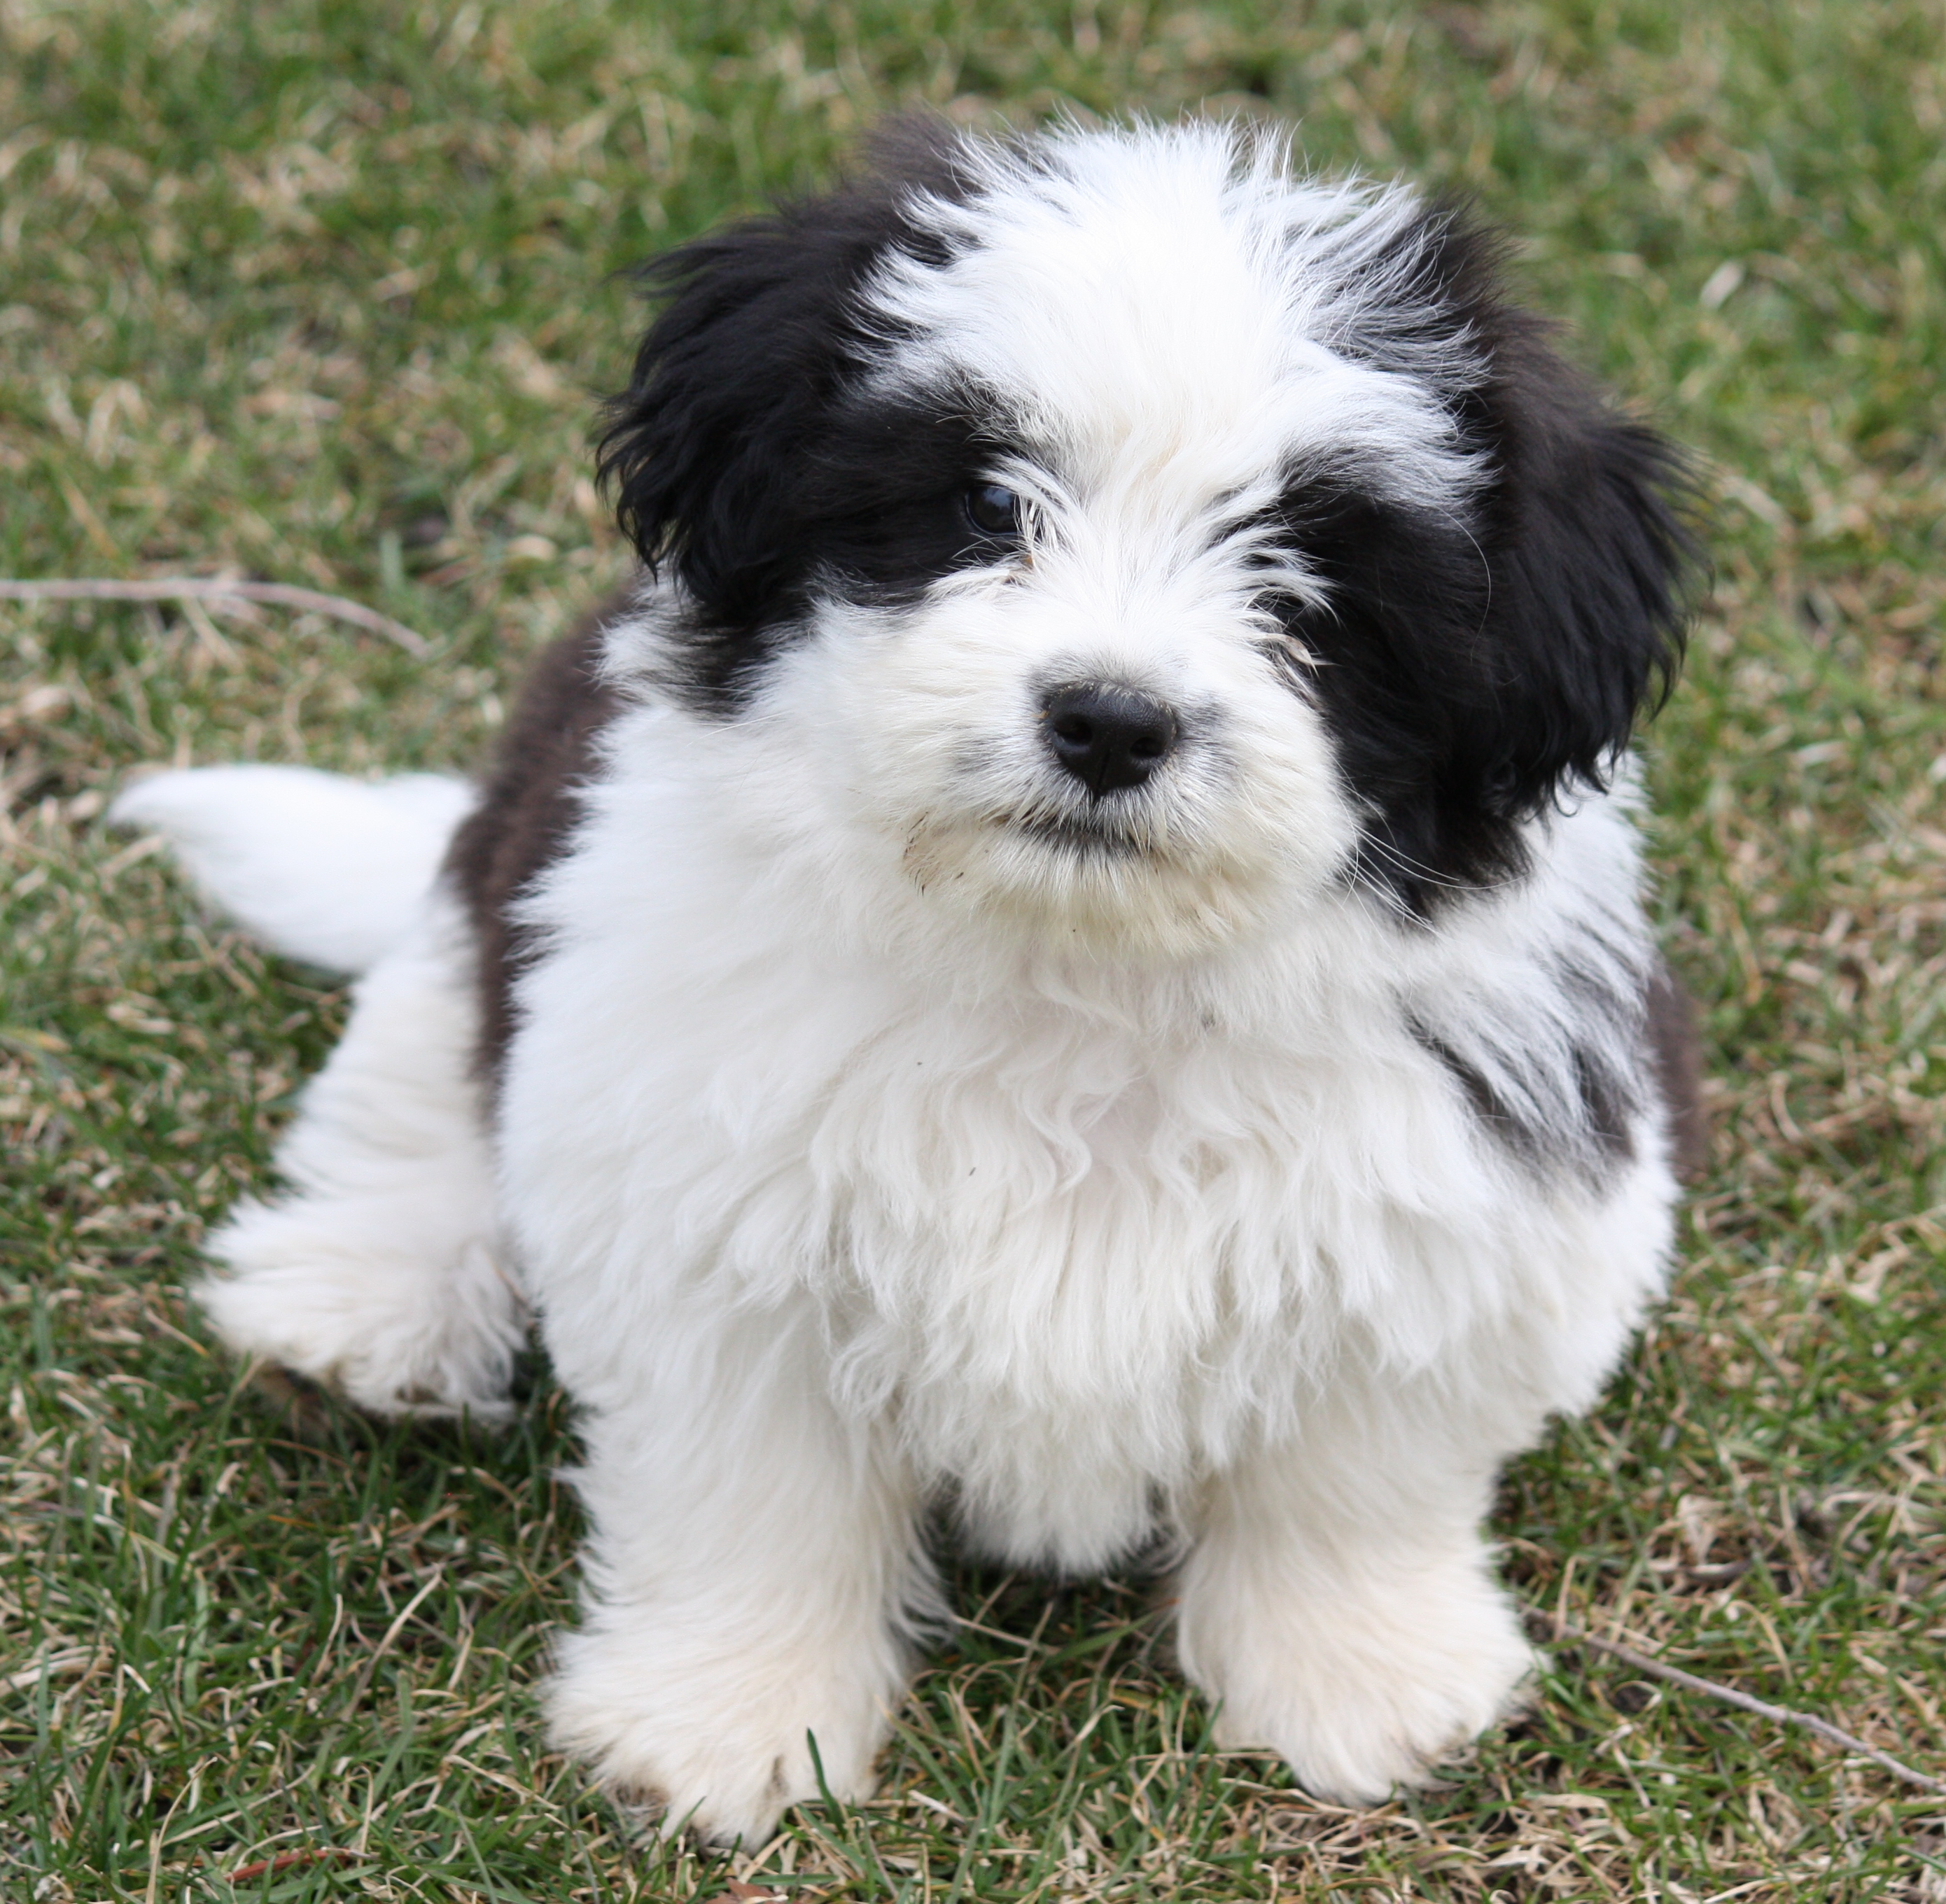 File:Corgi Shih tzu Hybrid 10weeks.jpg - Wikipedia, the free ...